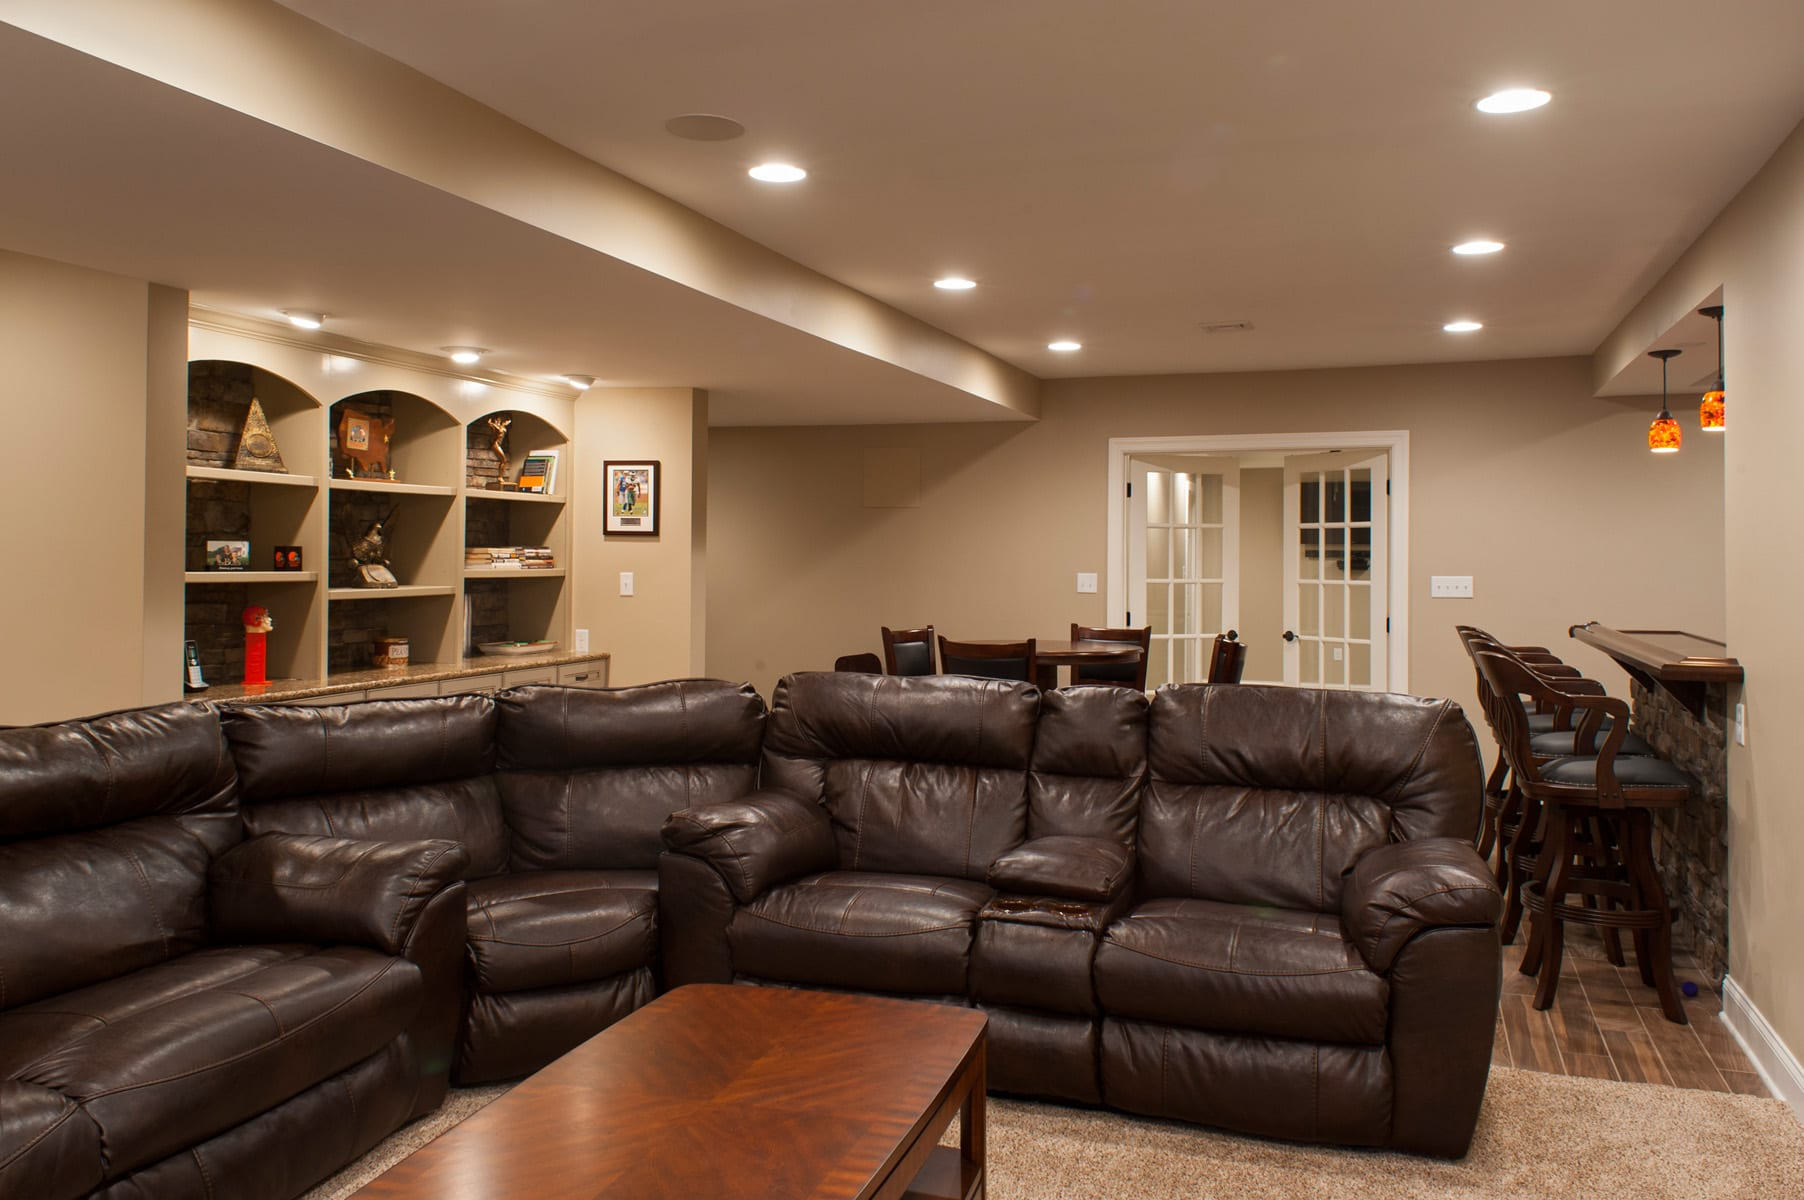 basement remodel photos. More Basement Remodel Projects » Photos